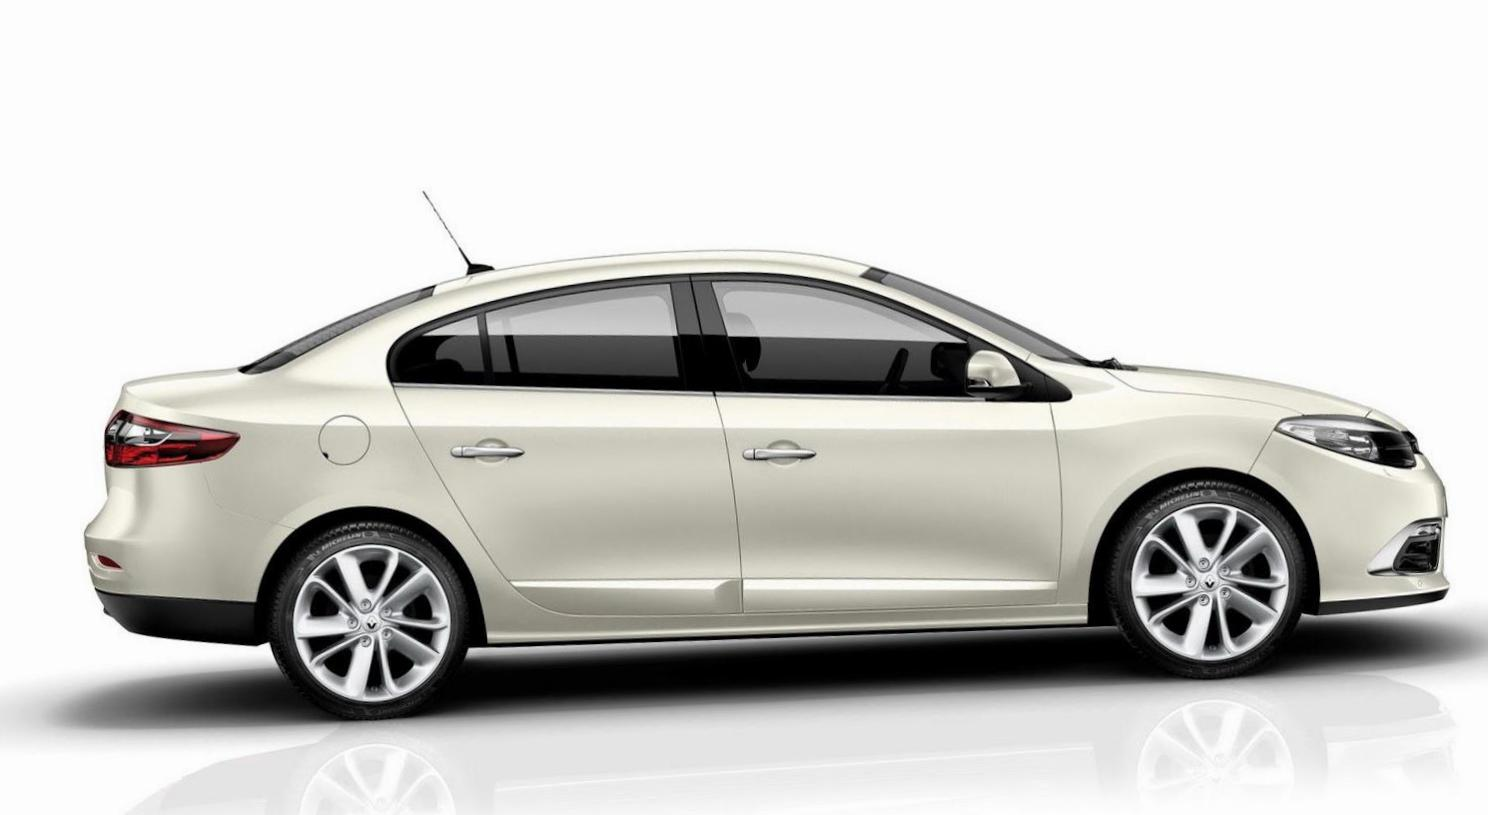 Renault Fluence approved 2010